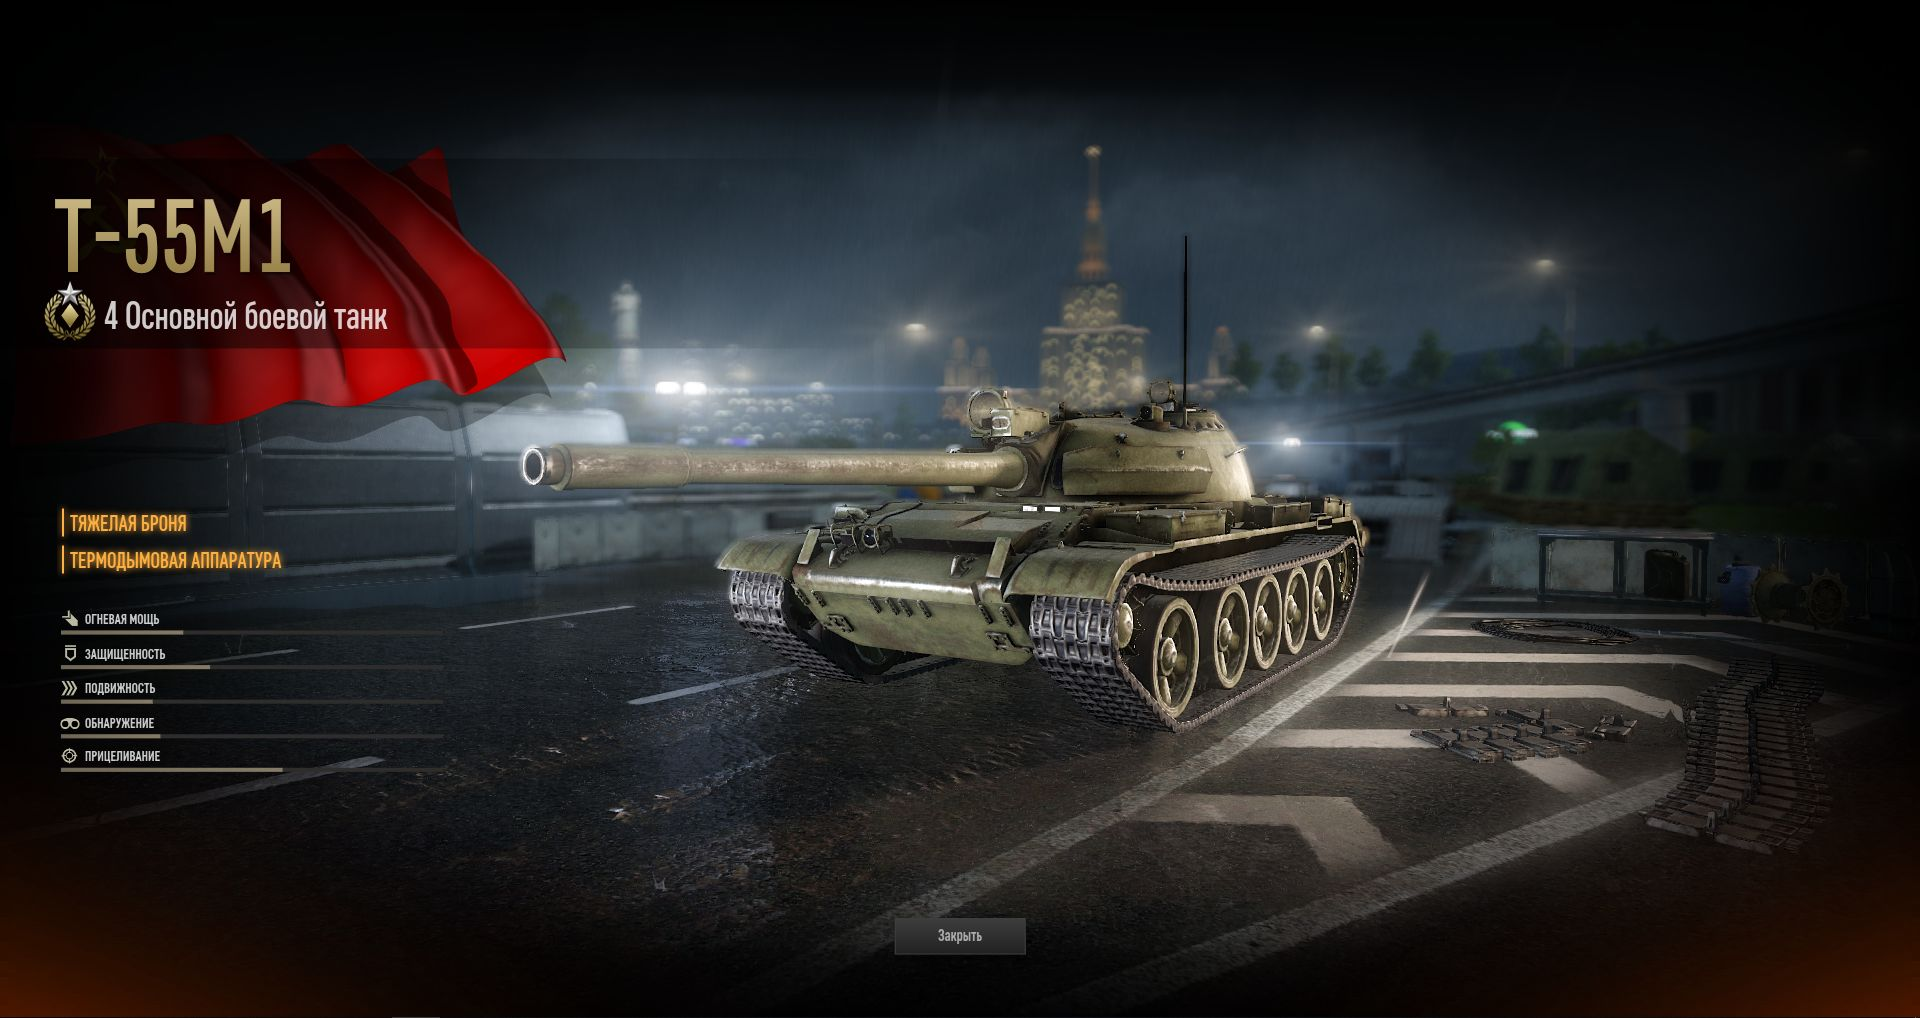 Tier 5 Premium-Tanks mit bevorzugter Matchmacherei Rsd Nation Speed Dating